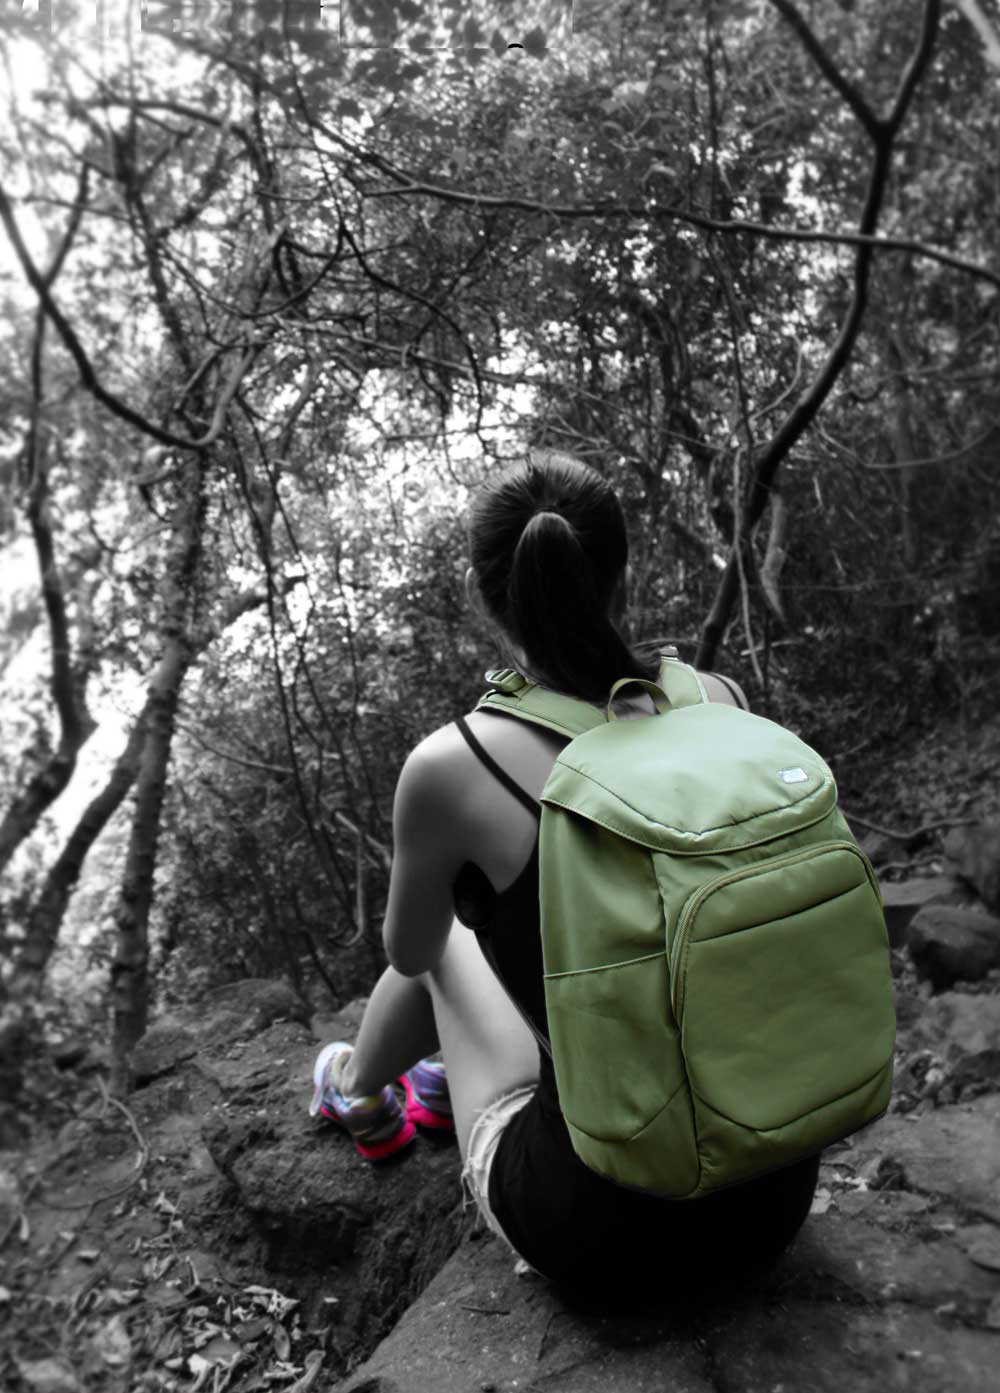 woman-sitting-down-hiking-with-green-pacsafe-backpack